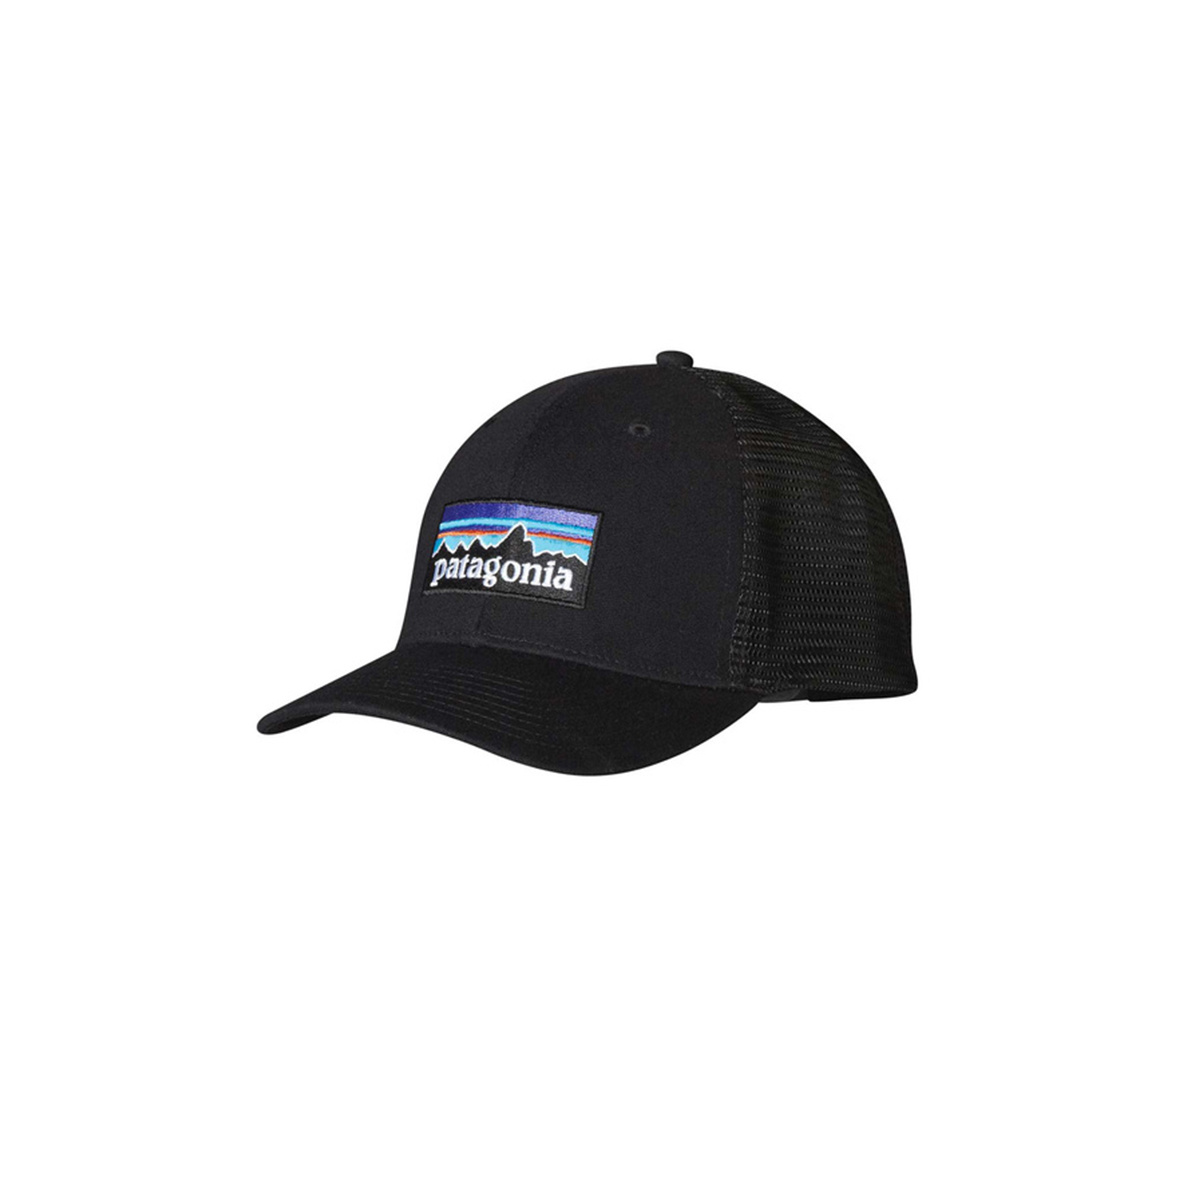 8b3a49c741 Patagonia P-6 Logo LoPro Trucker Hat - Gearhead Outfitters